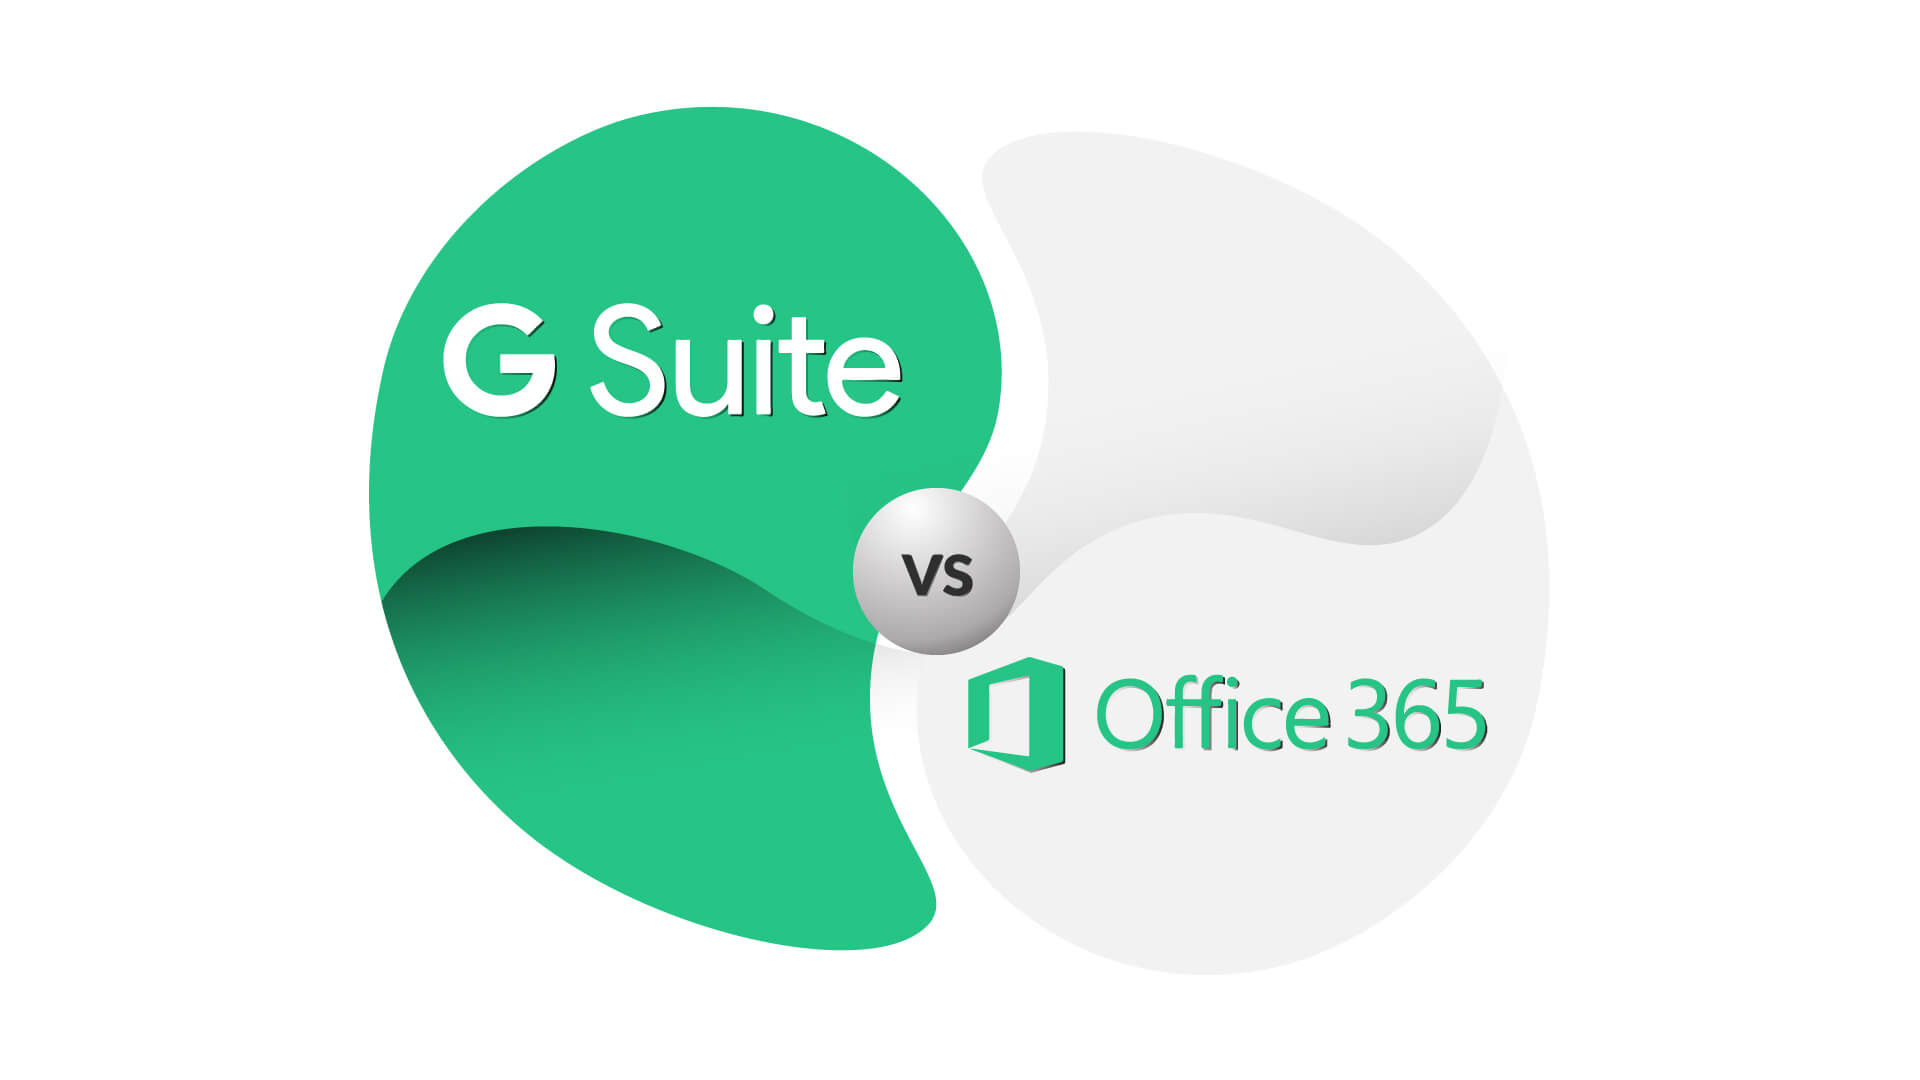 G Suite vs Office 355 showdown with a comparison chart